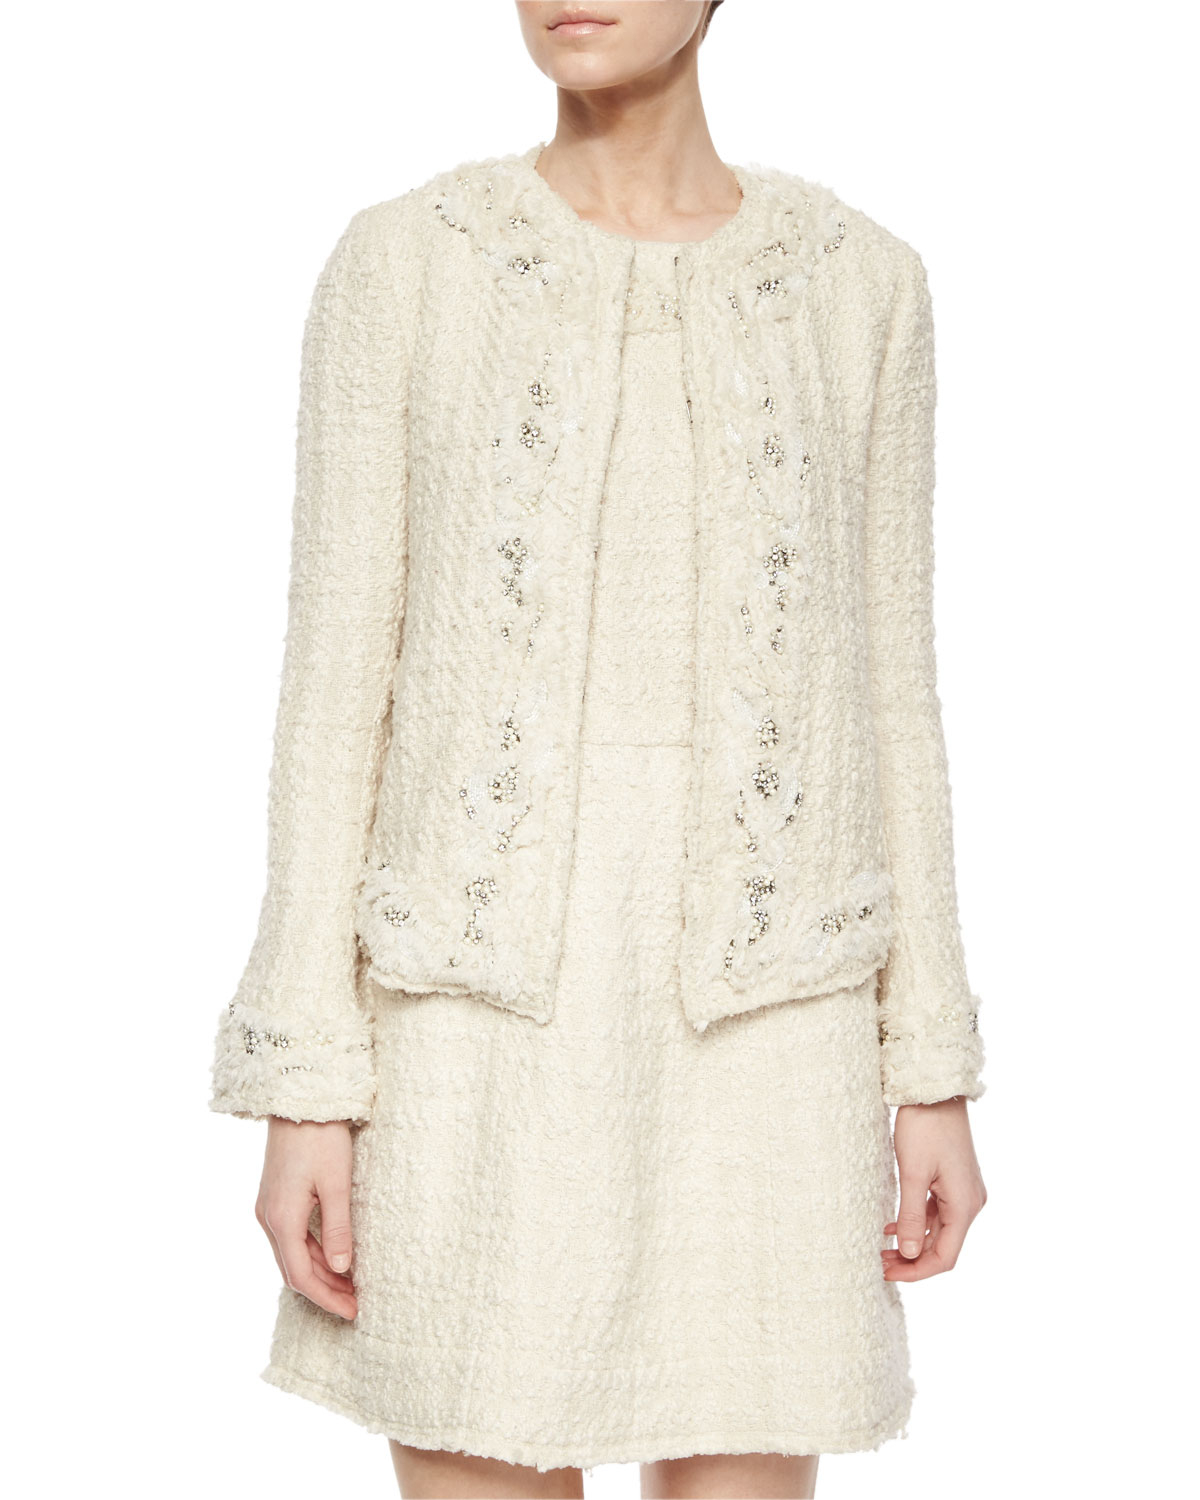 Alice   olivia Nilla Embellished Tweed Jacket in Natural | Lyst